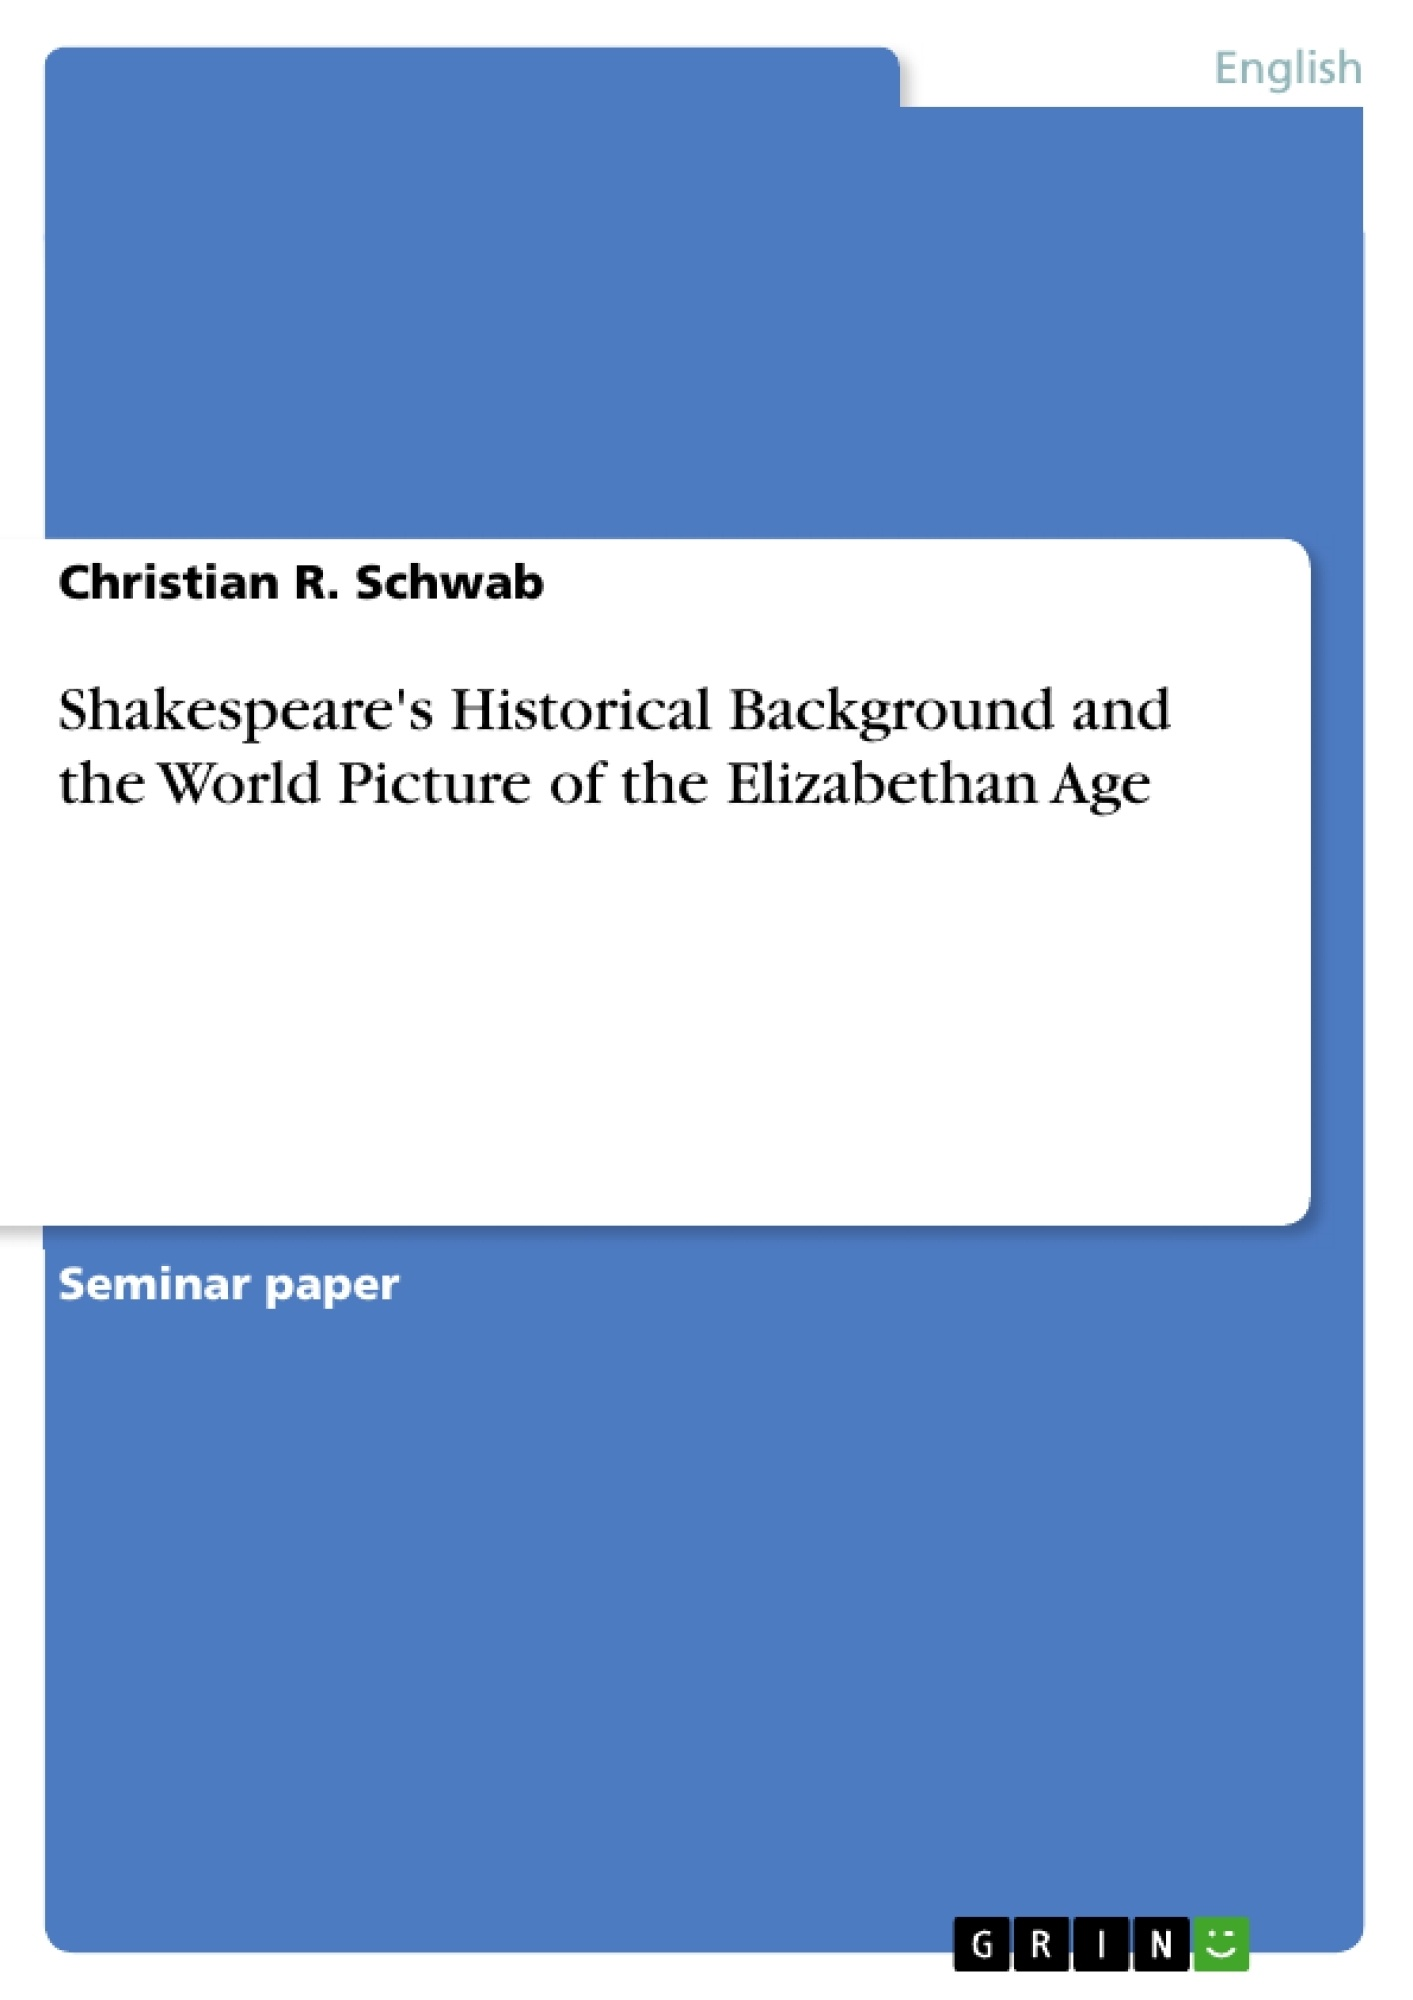 Title: Shakespeare's Historical Background and the World Picture of the Elizabethan Age